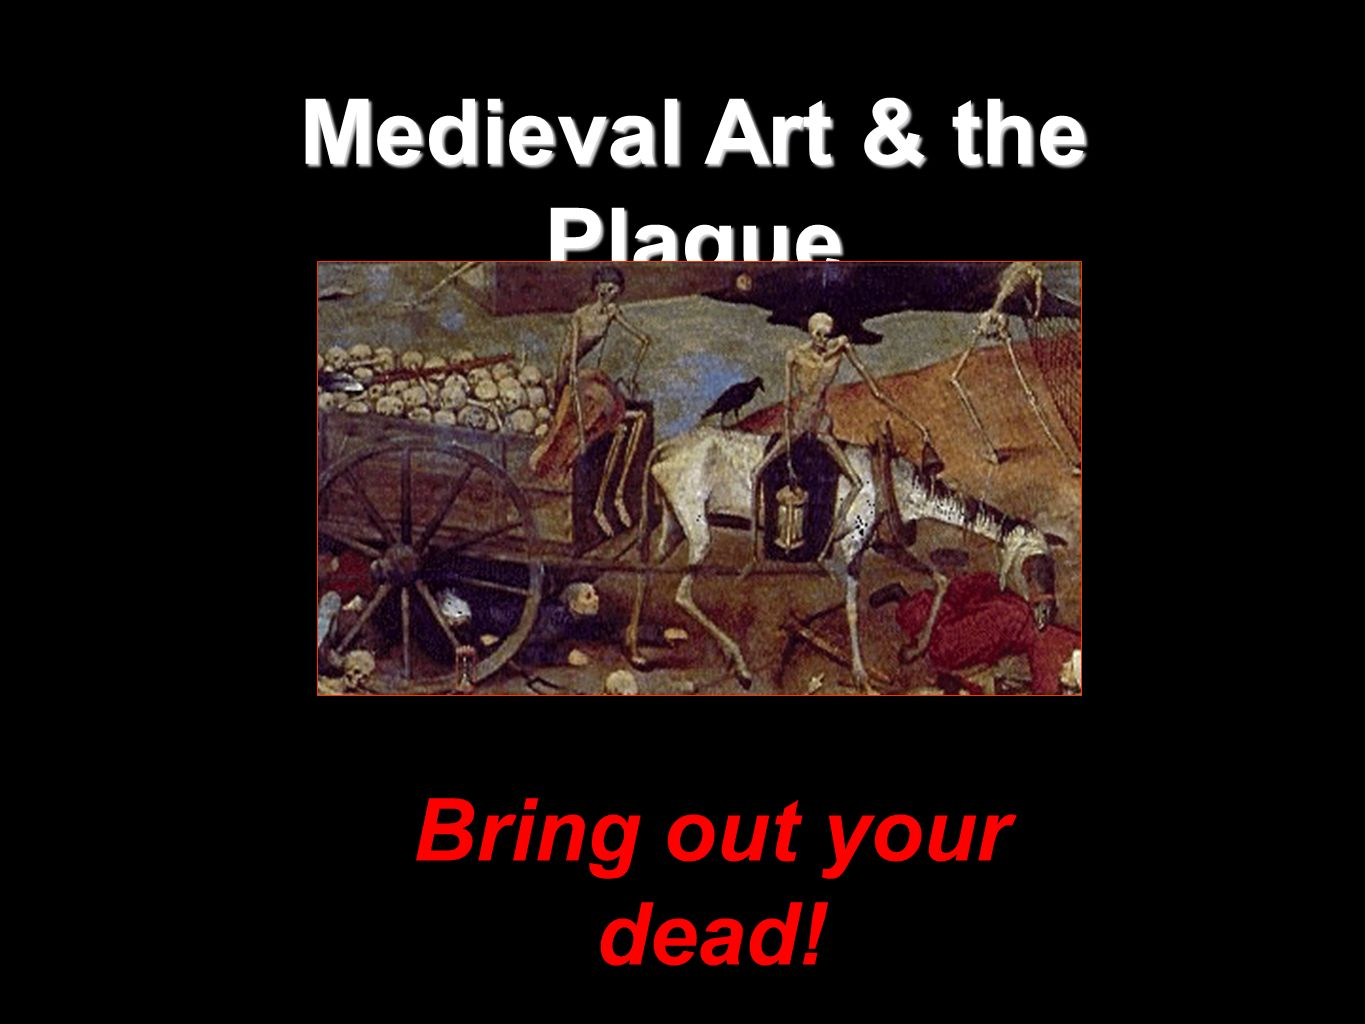 Medieval Art & the Plague